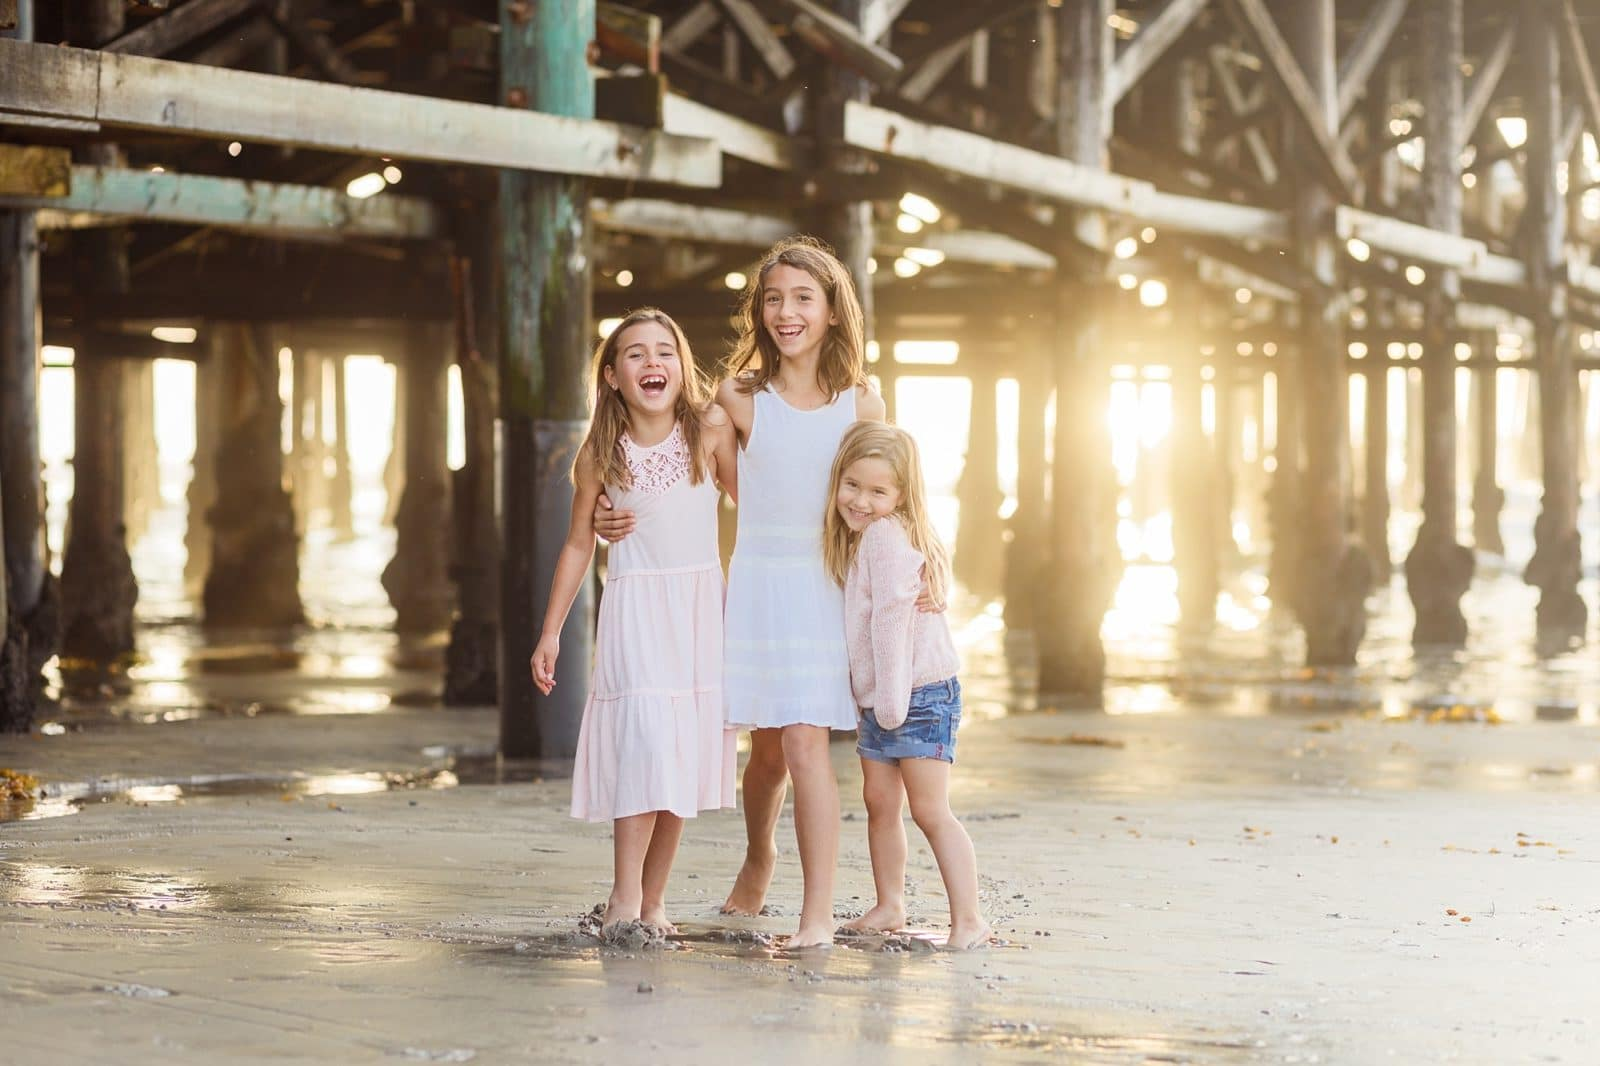 San Diego Beach Portraits | Behind the Scenes